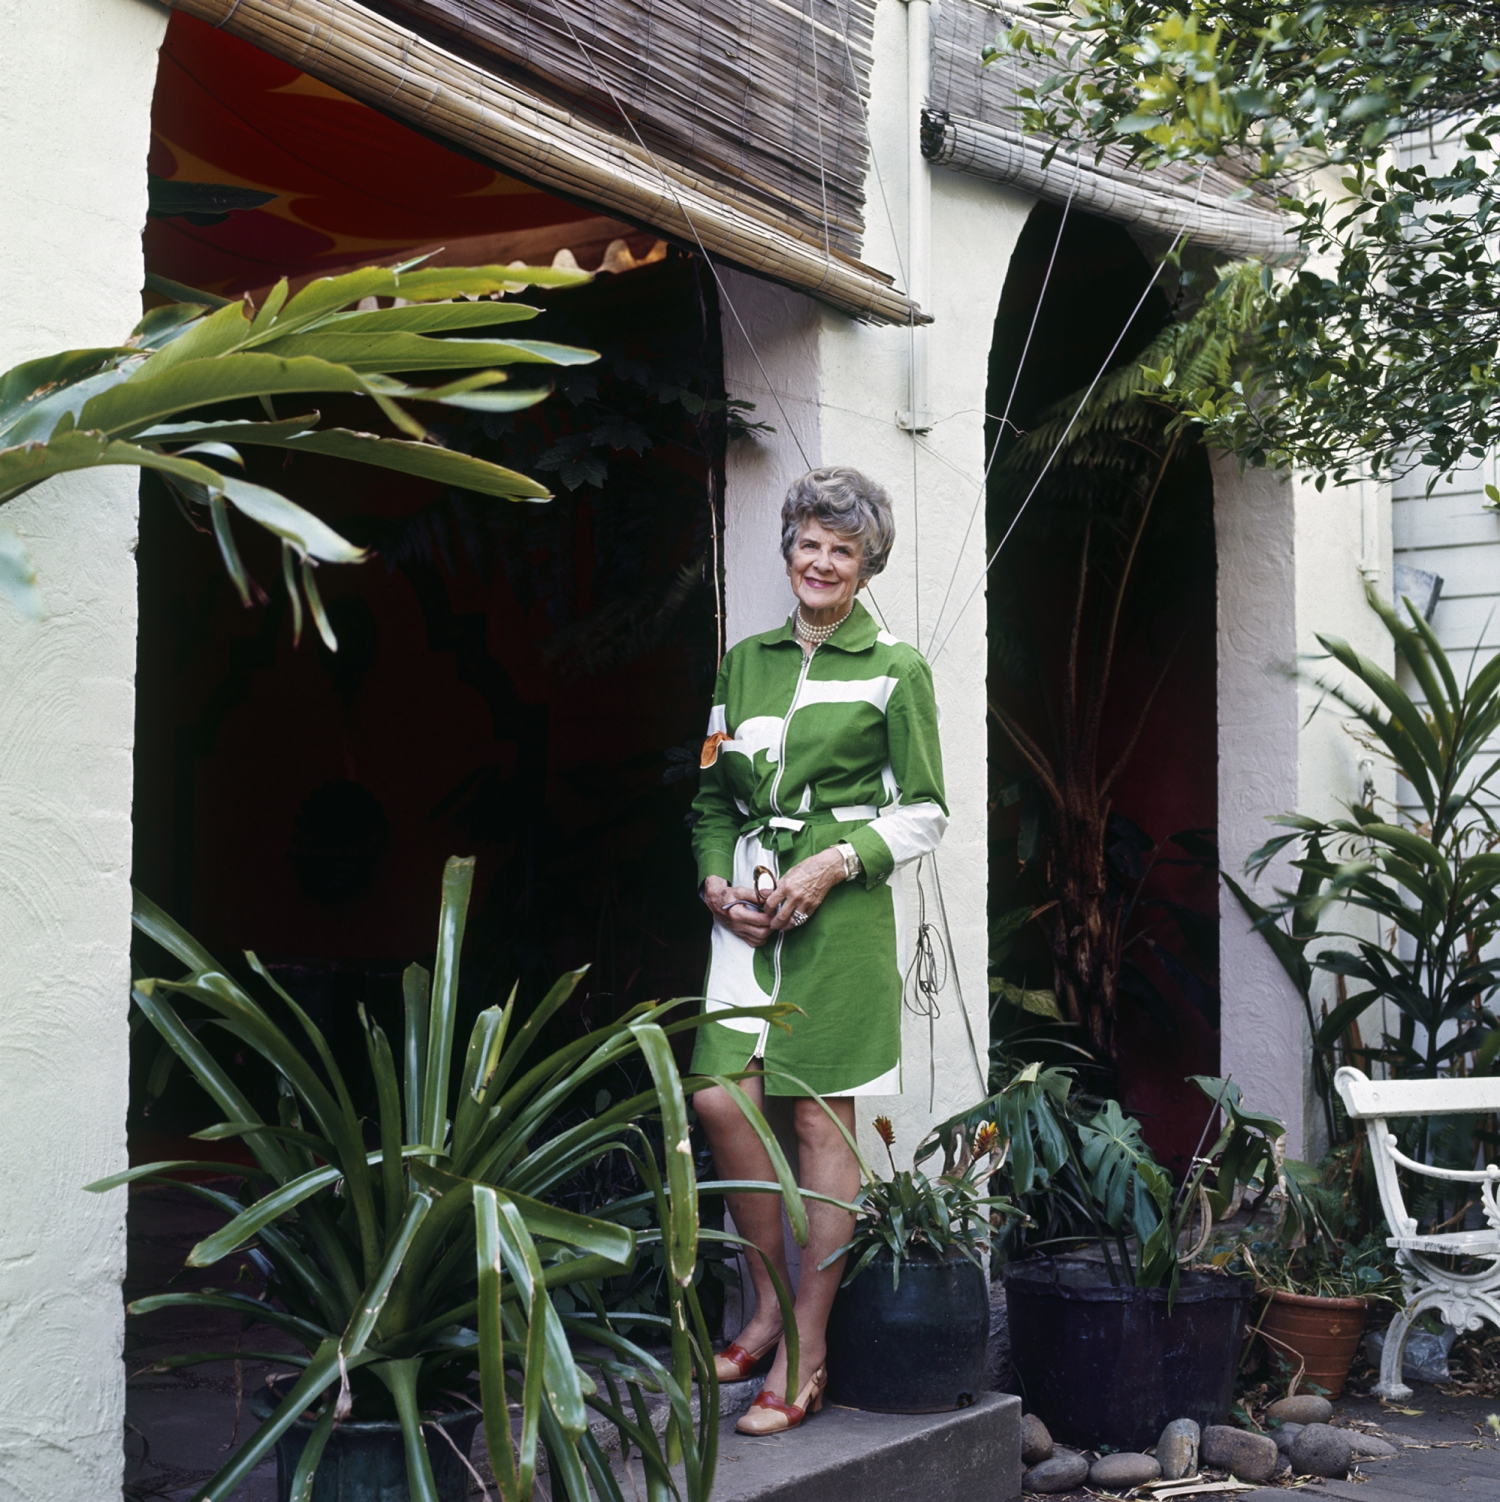 Woman in green and white patterned dress standing against white column in garden setting.